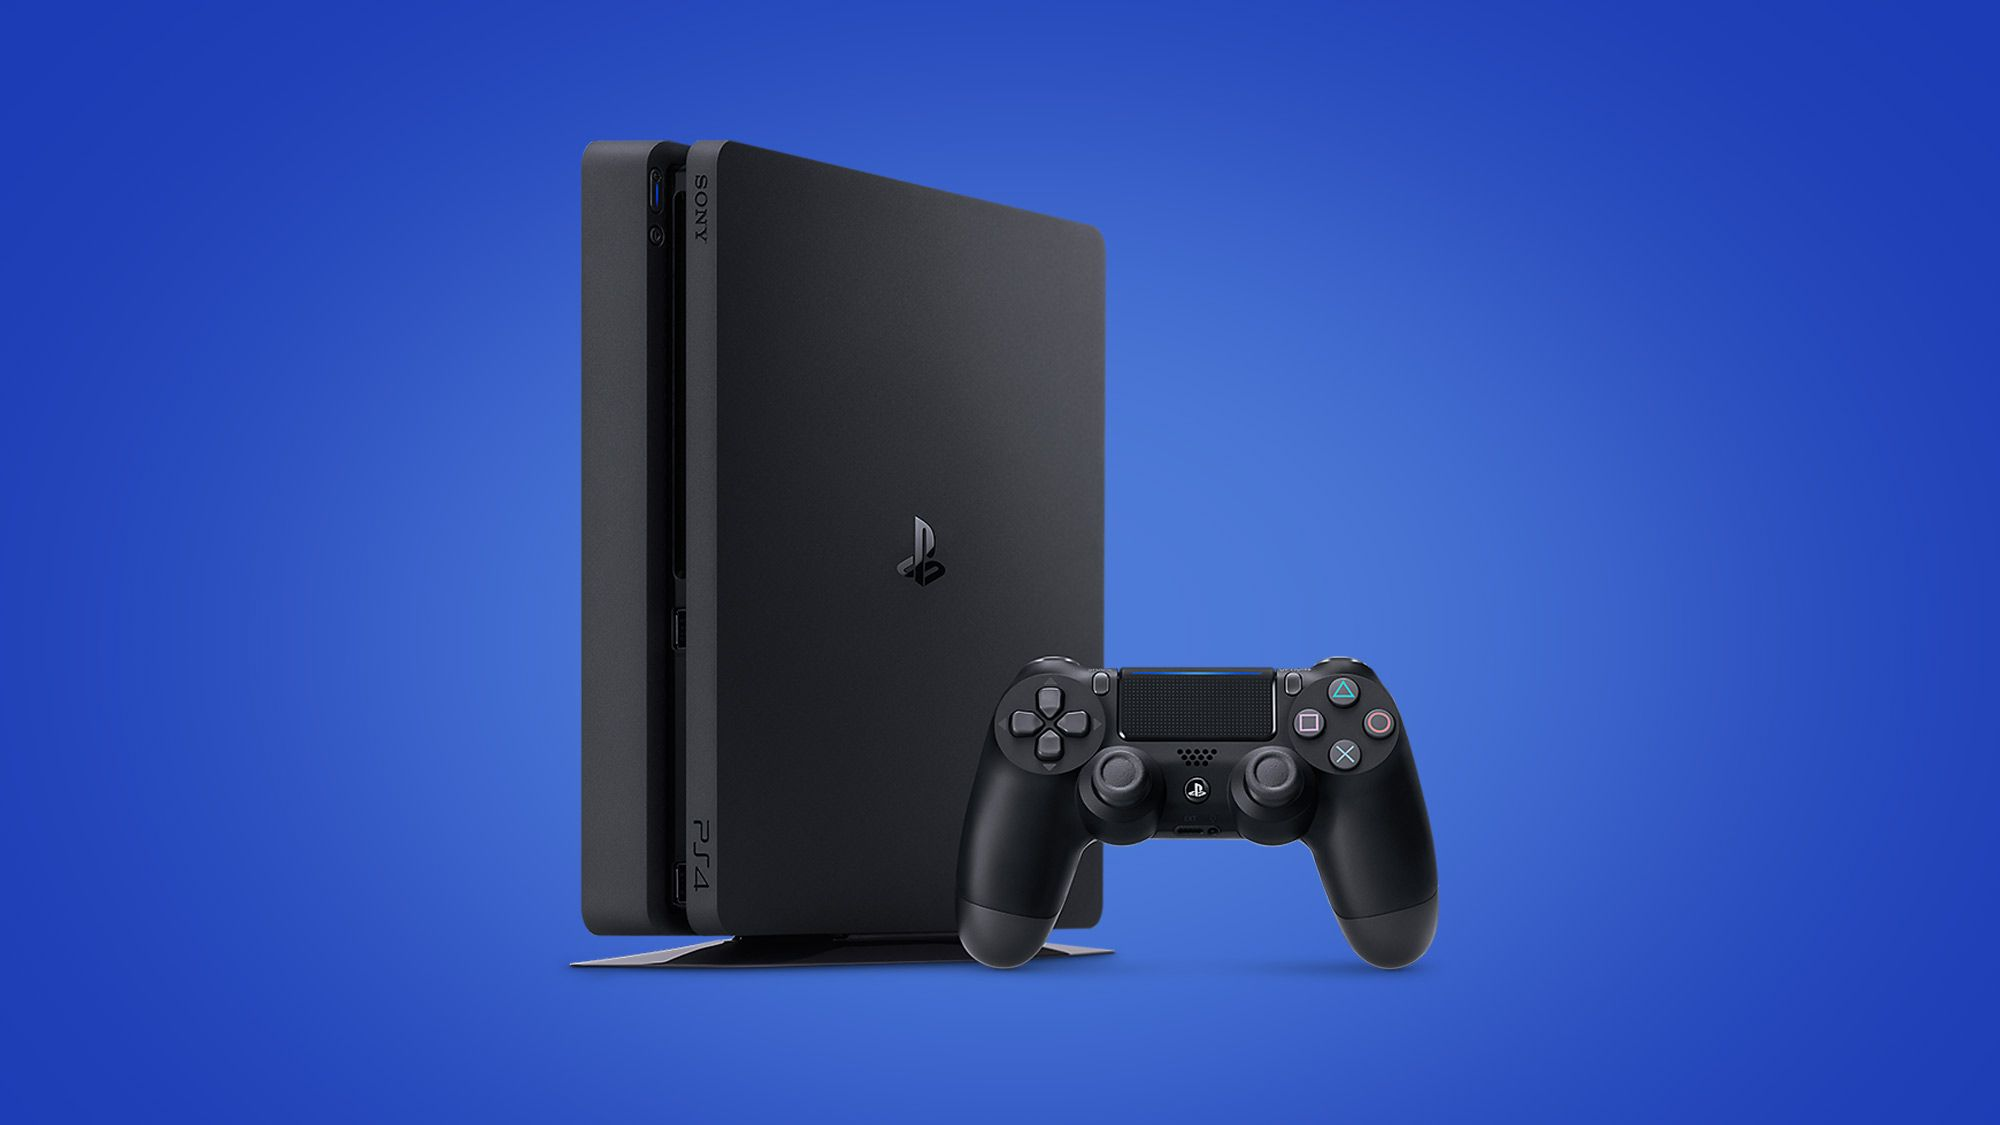 A Guide To Change Ps4 Password In 2021 Ps4 Price Ps4 Games Ps4 How to read videos on ps4